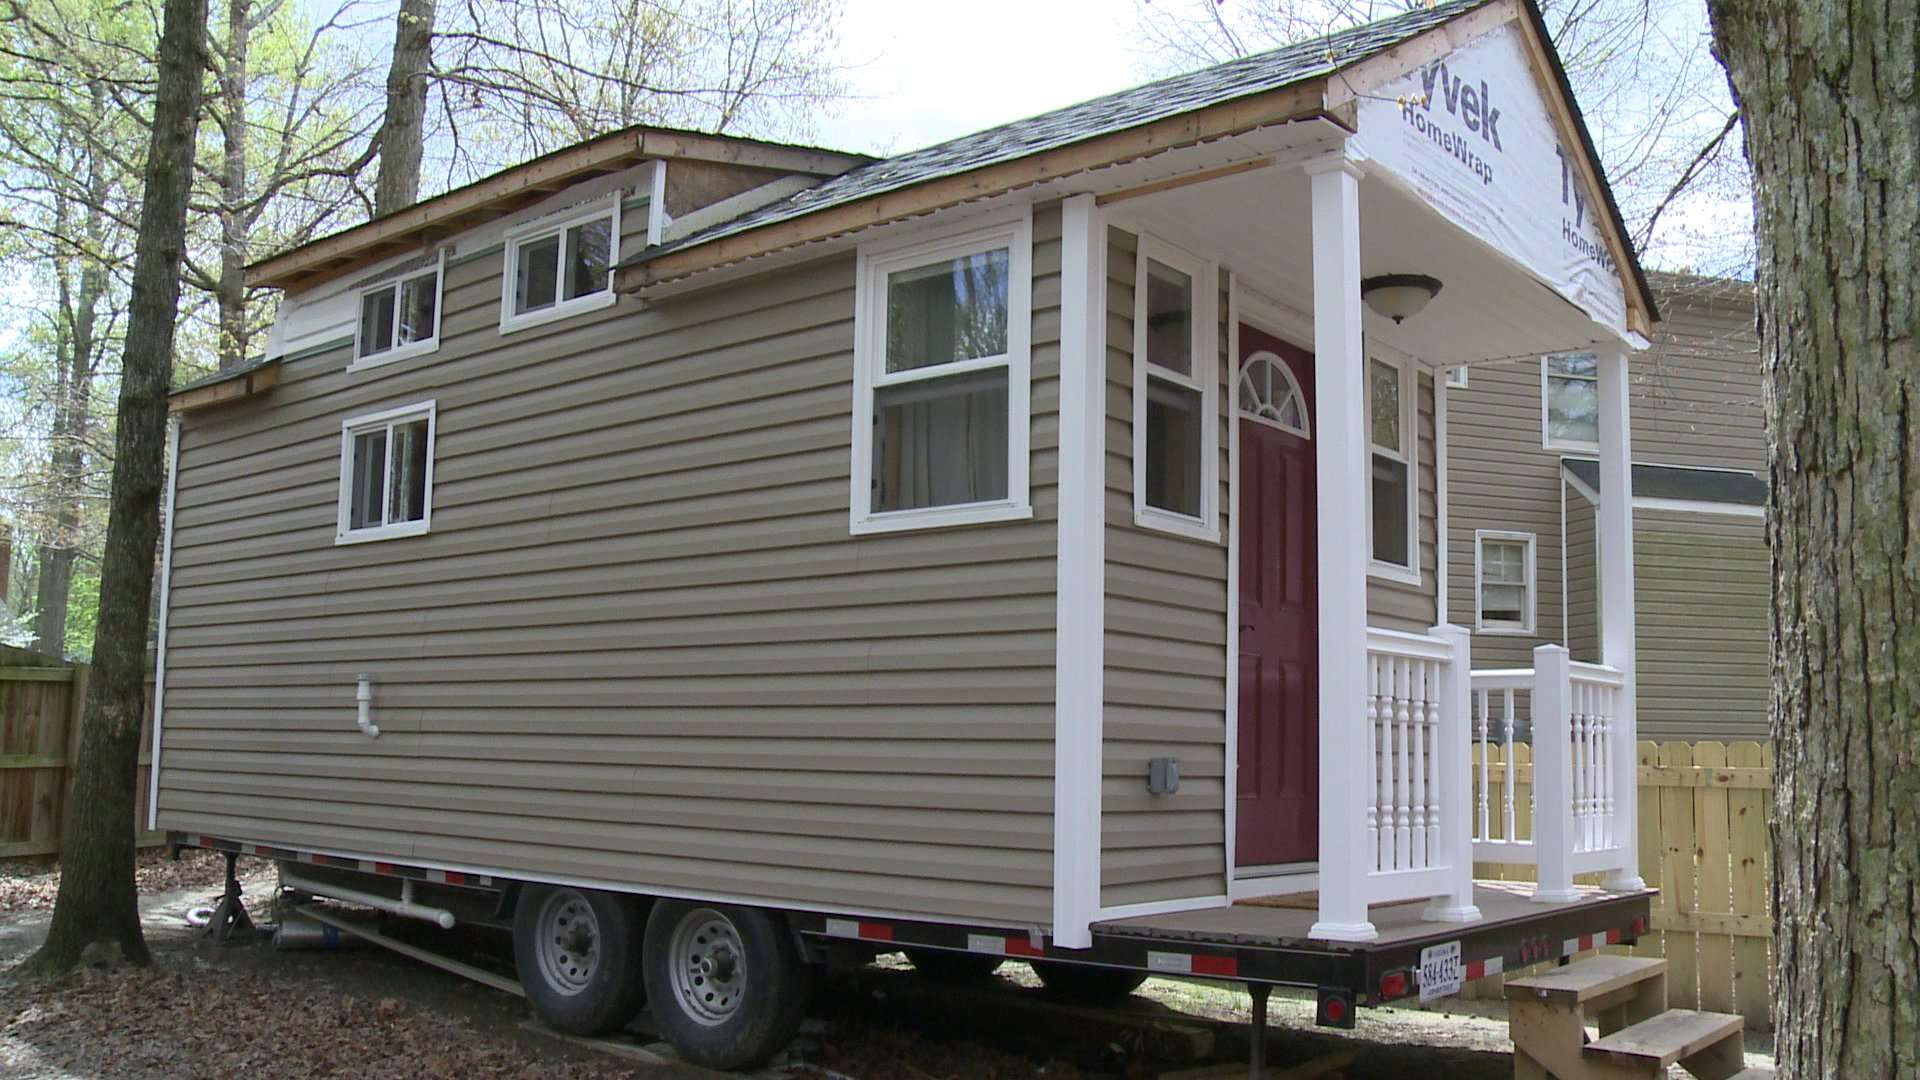 Chesterfield Man Tiny Home Met Big Resistance